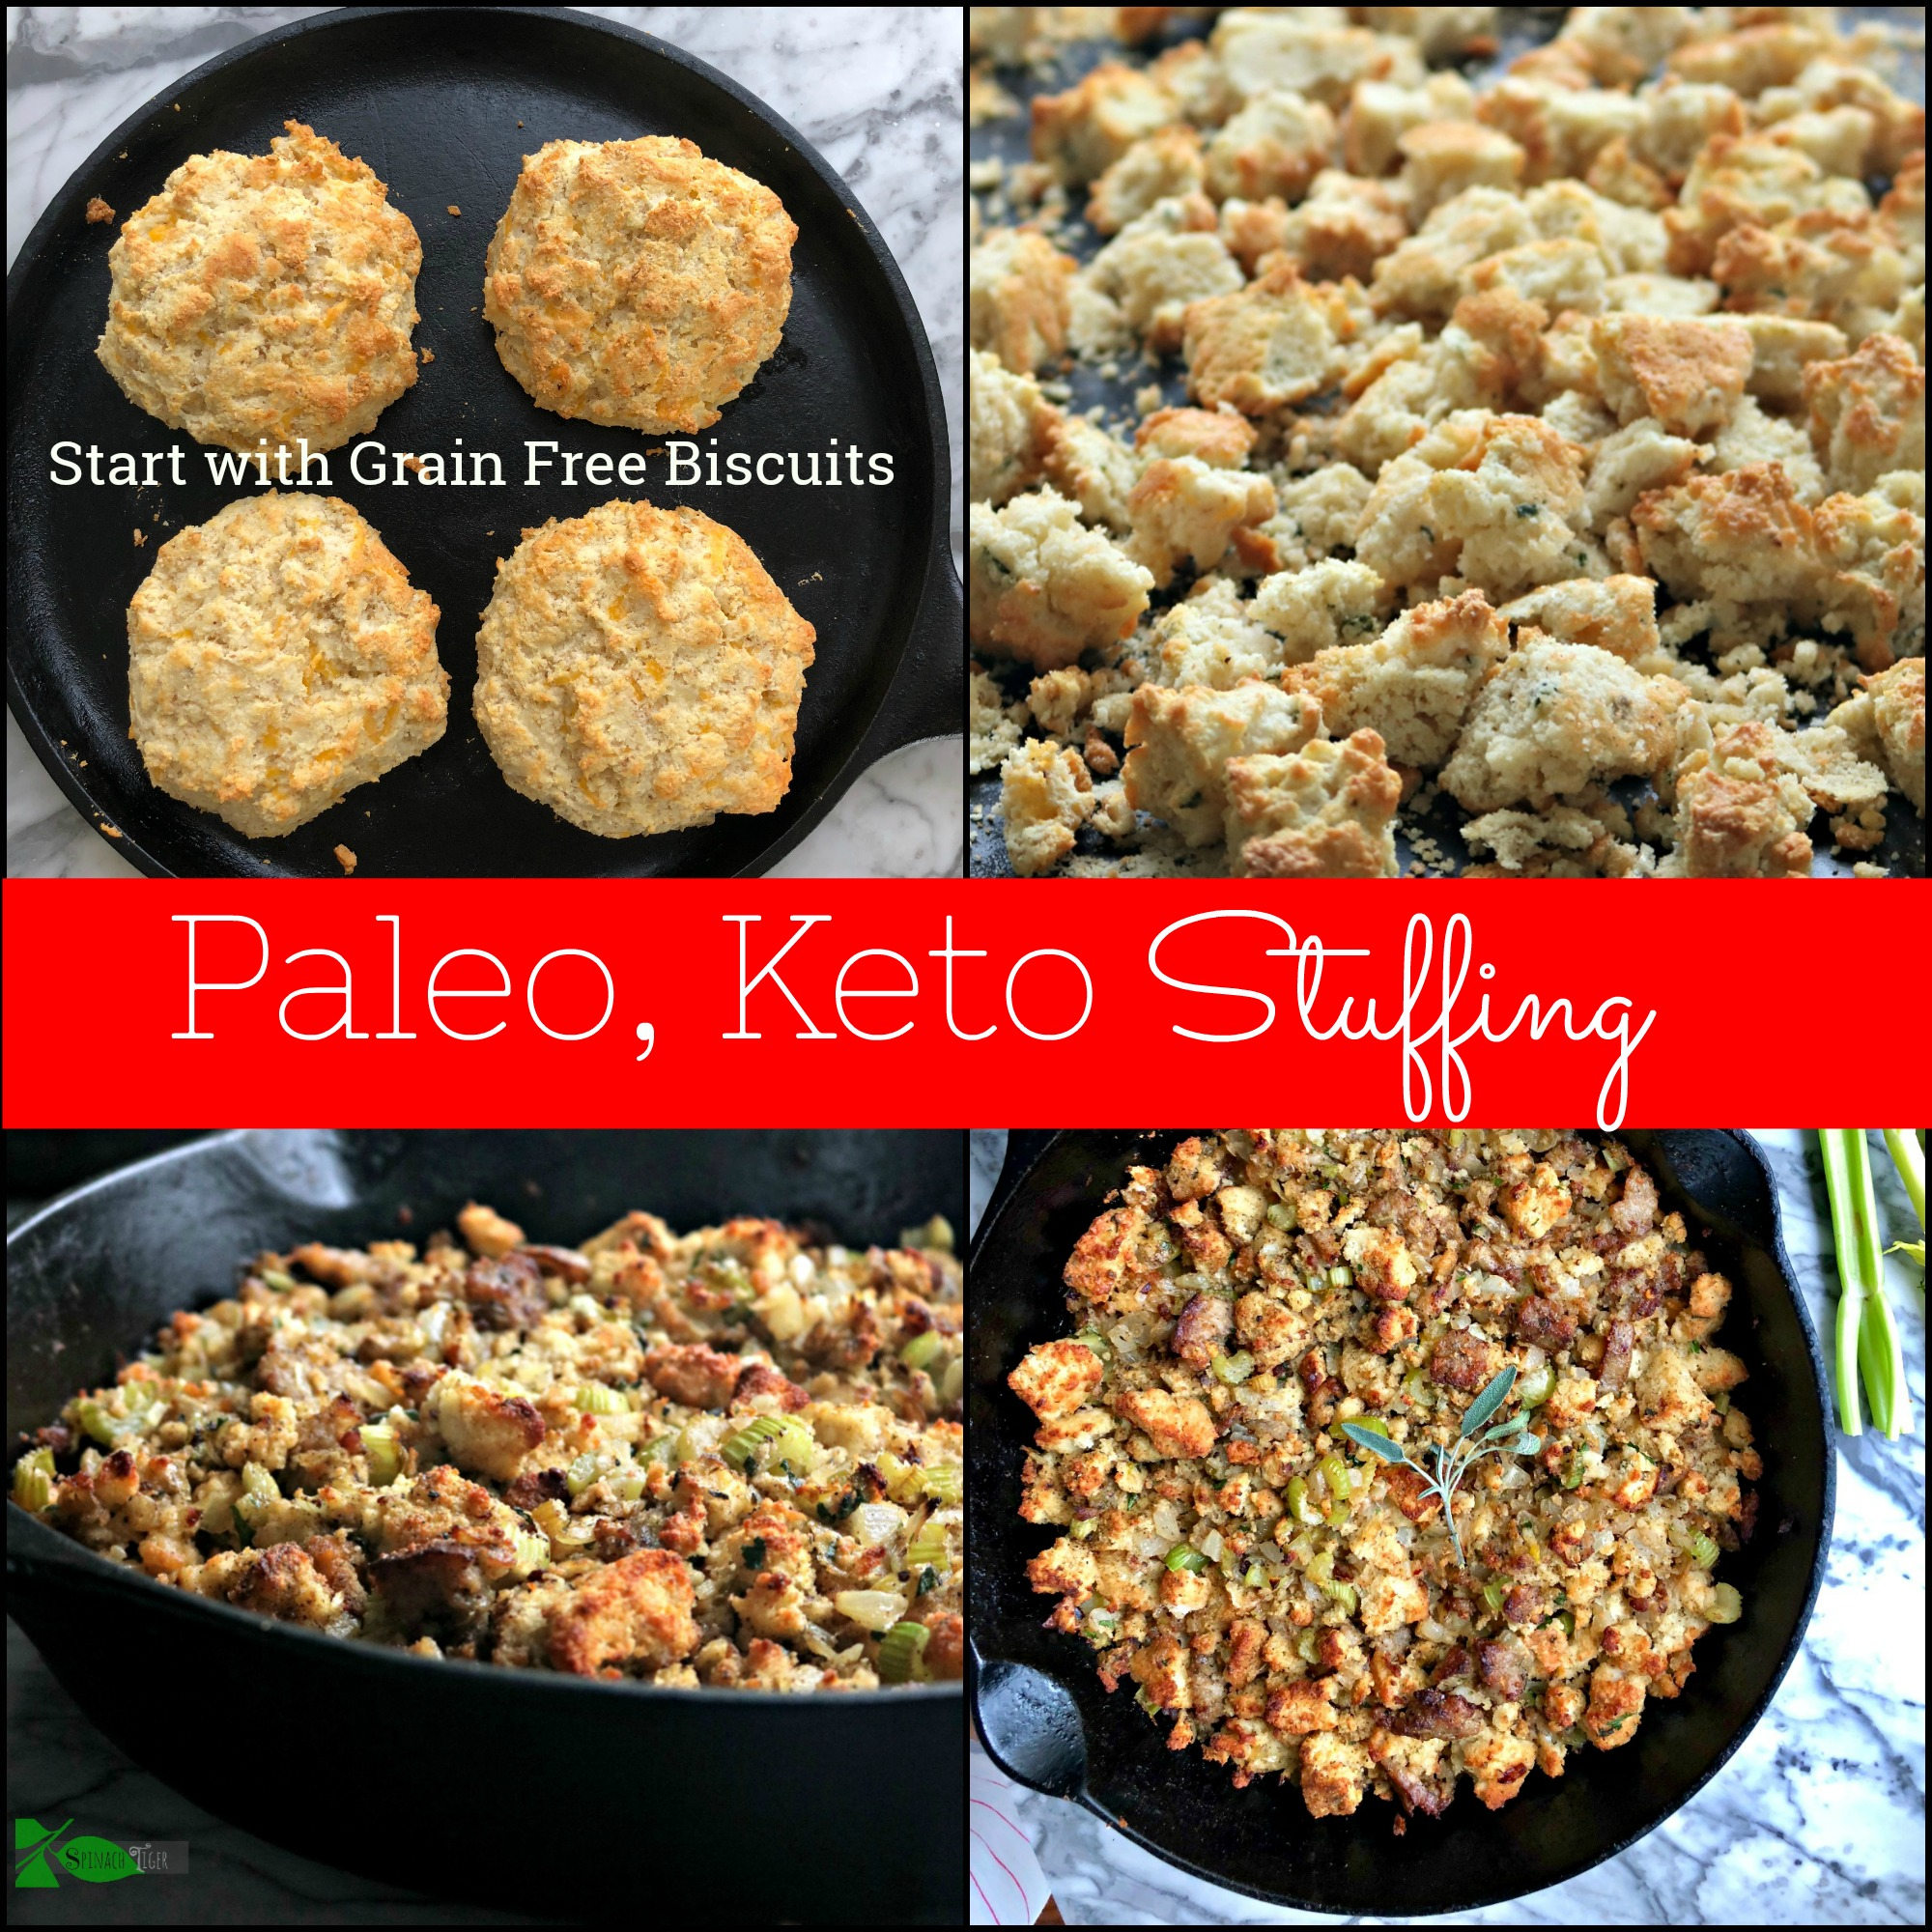 Keto Stuffing Hash from biscuits Spinach Tiger